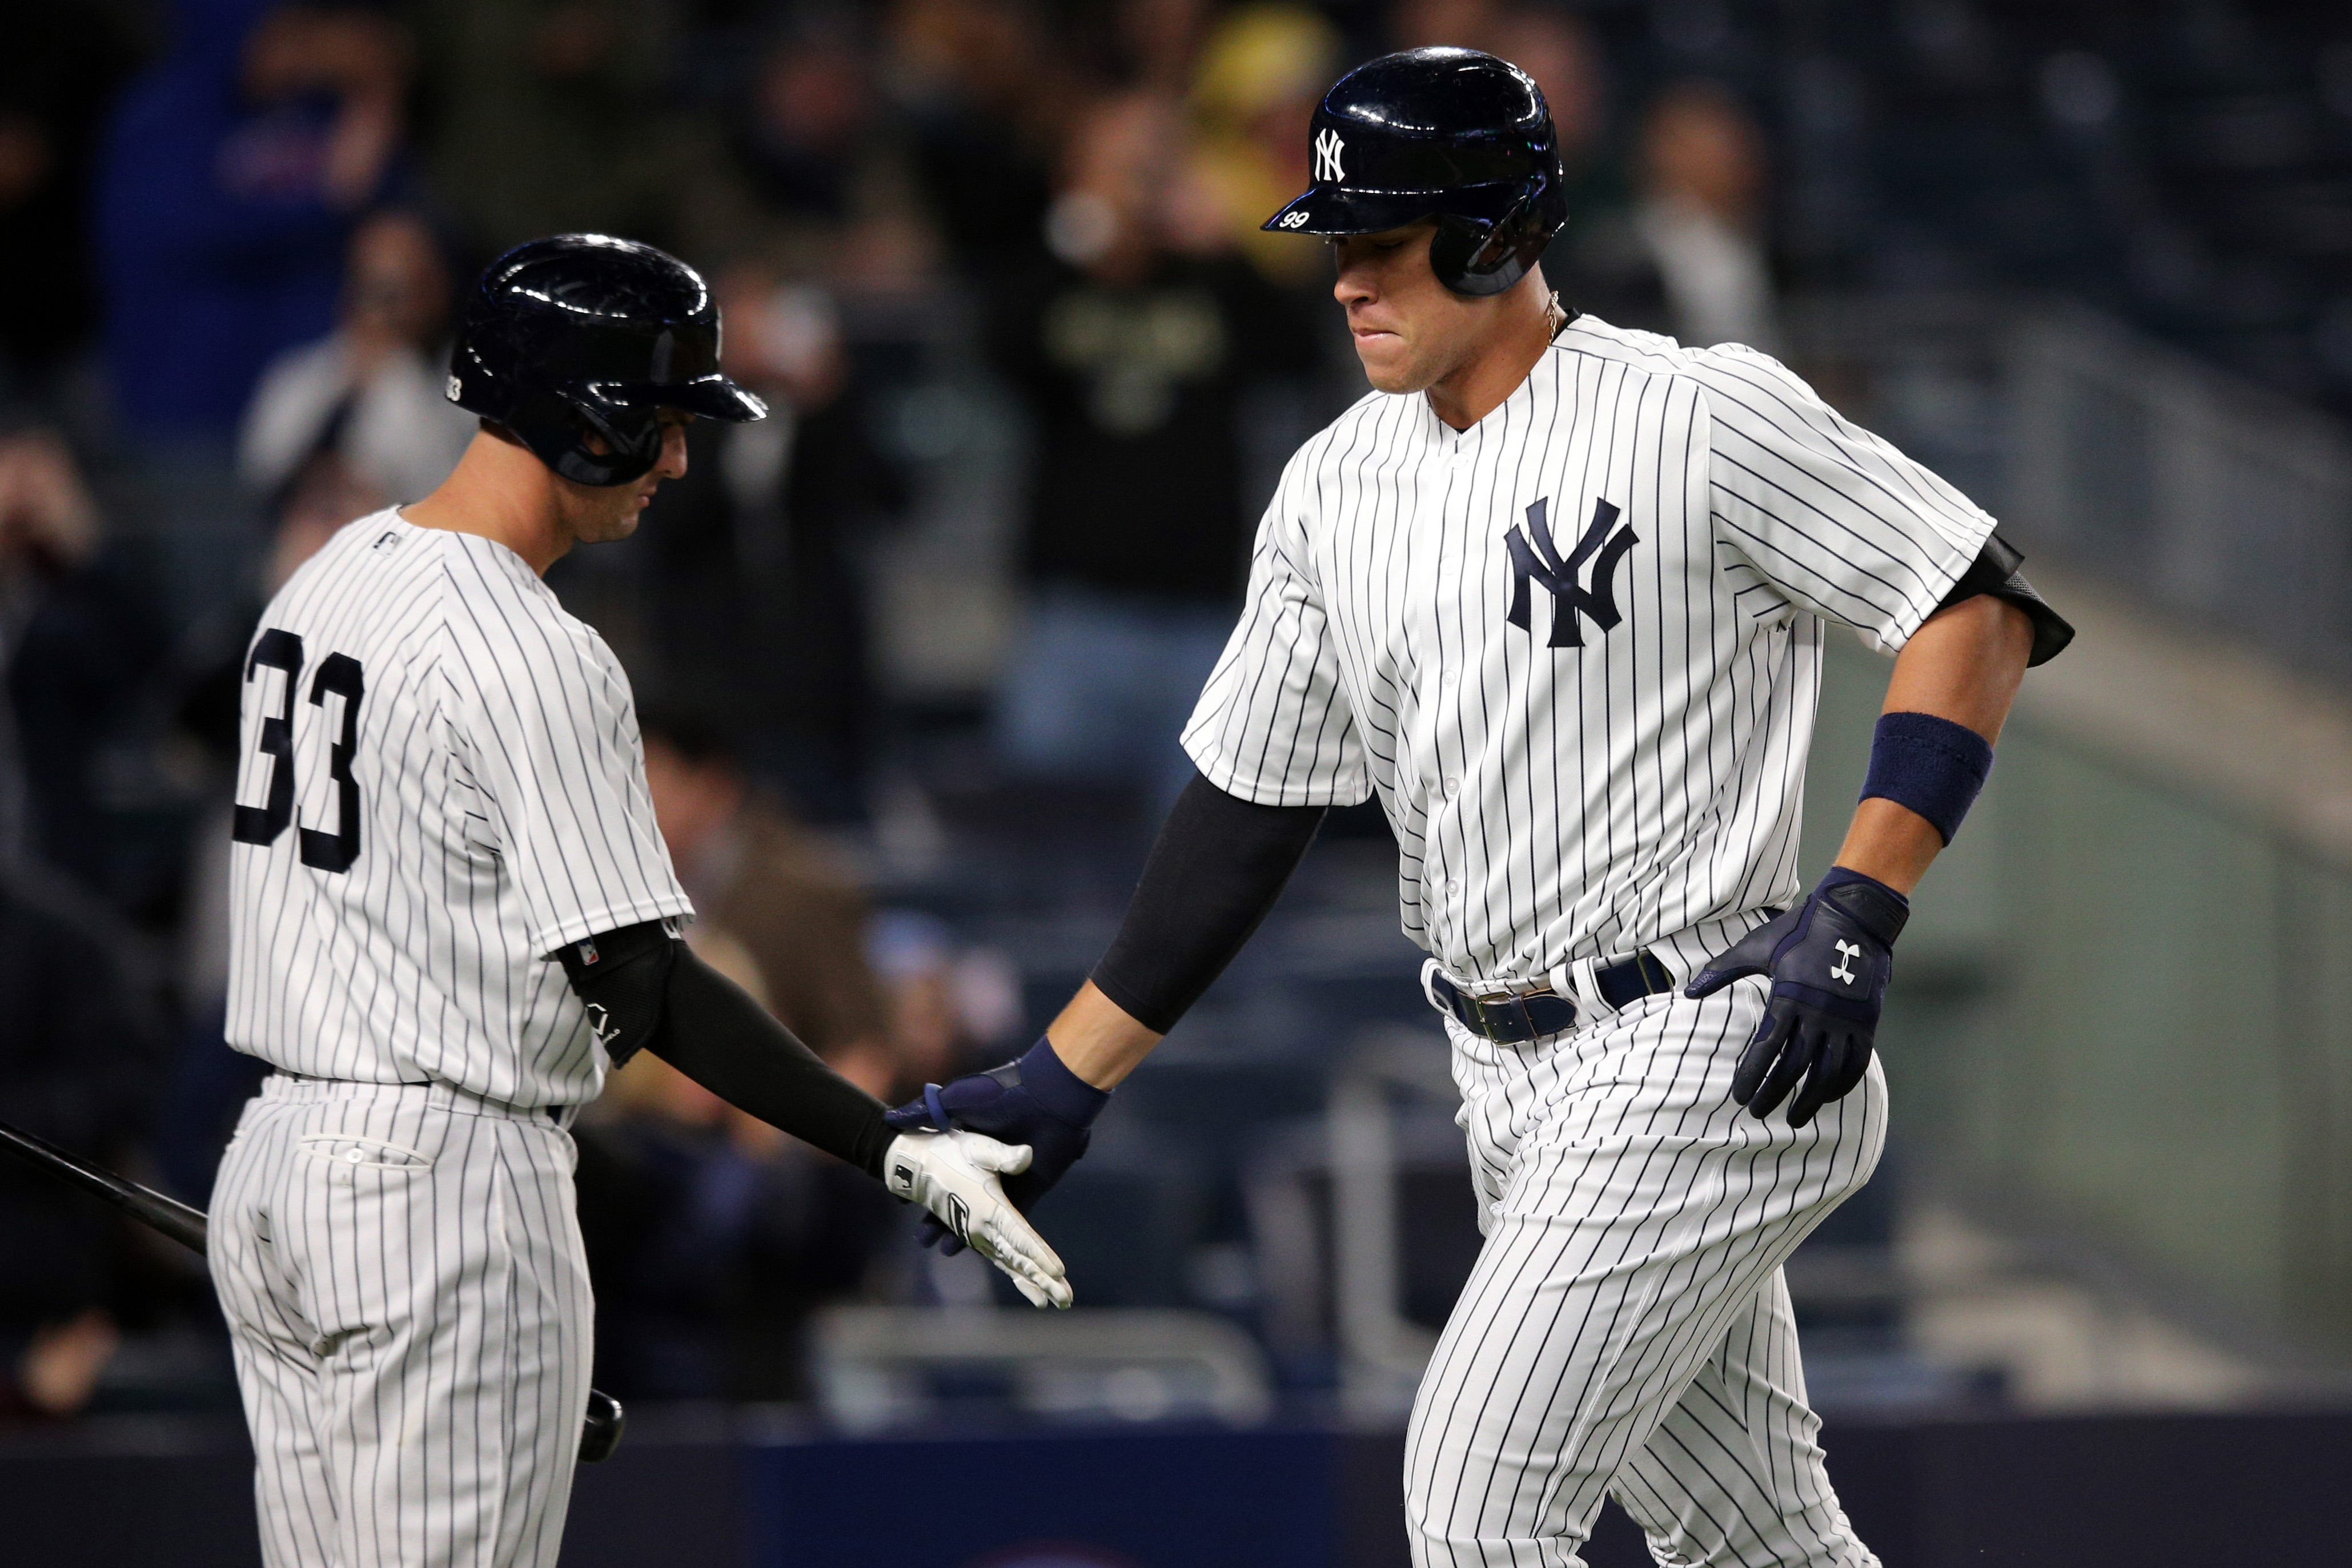 Power and pitching lead Yanks to victory